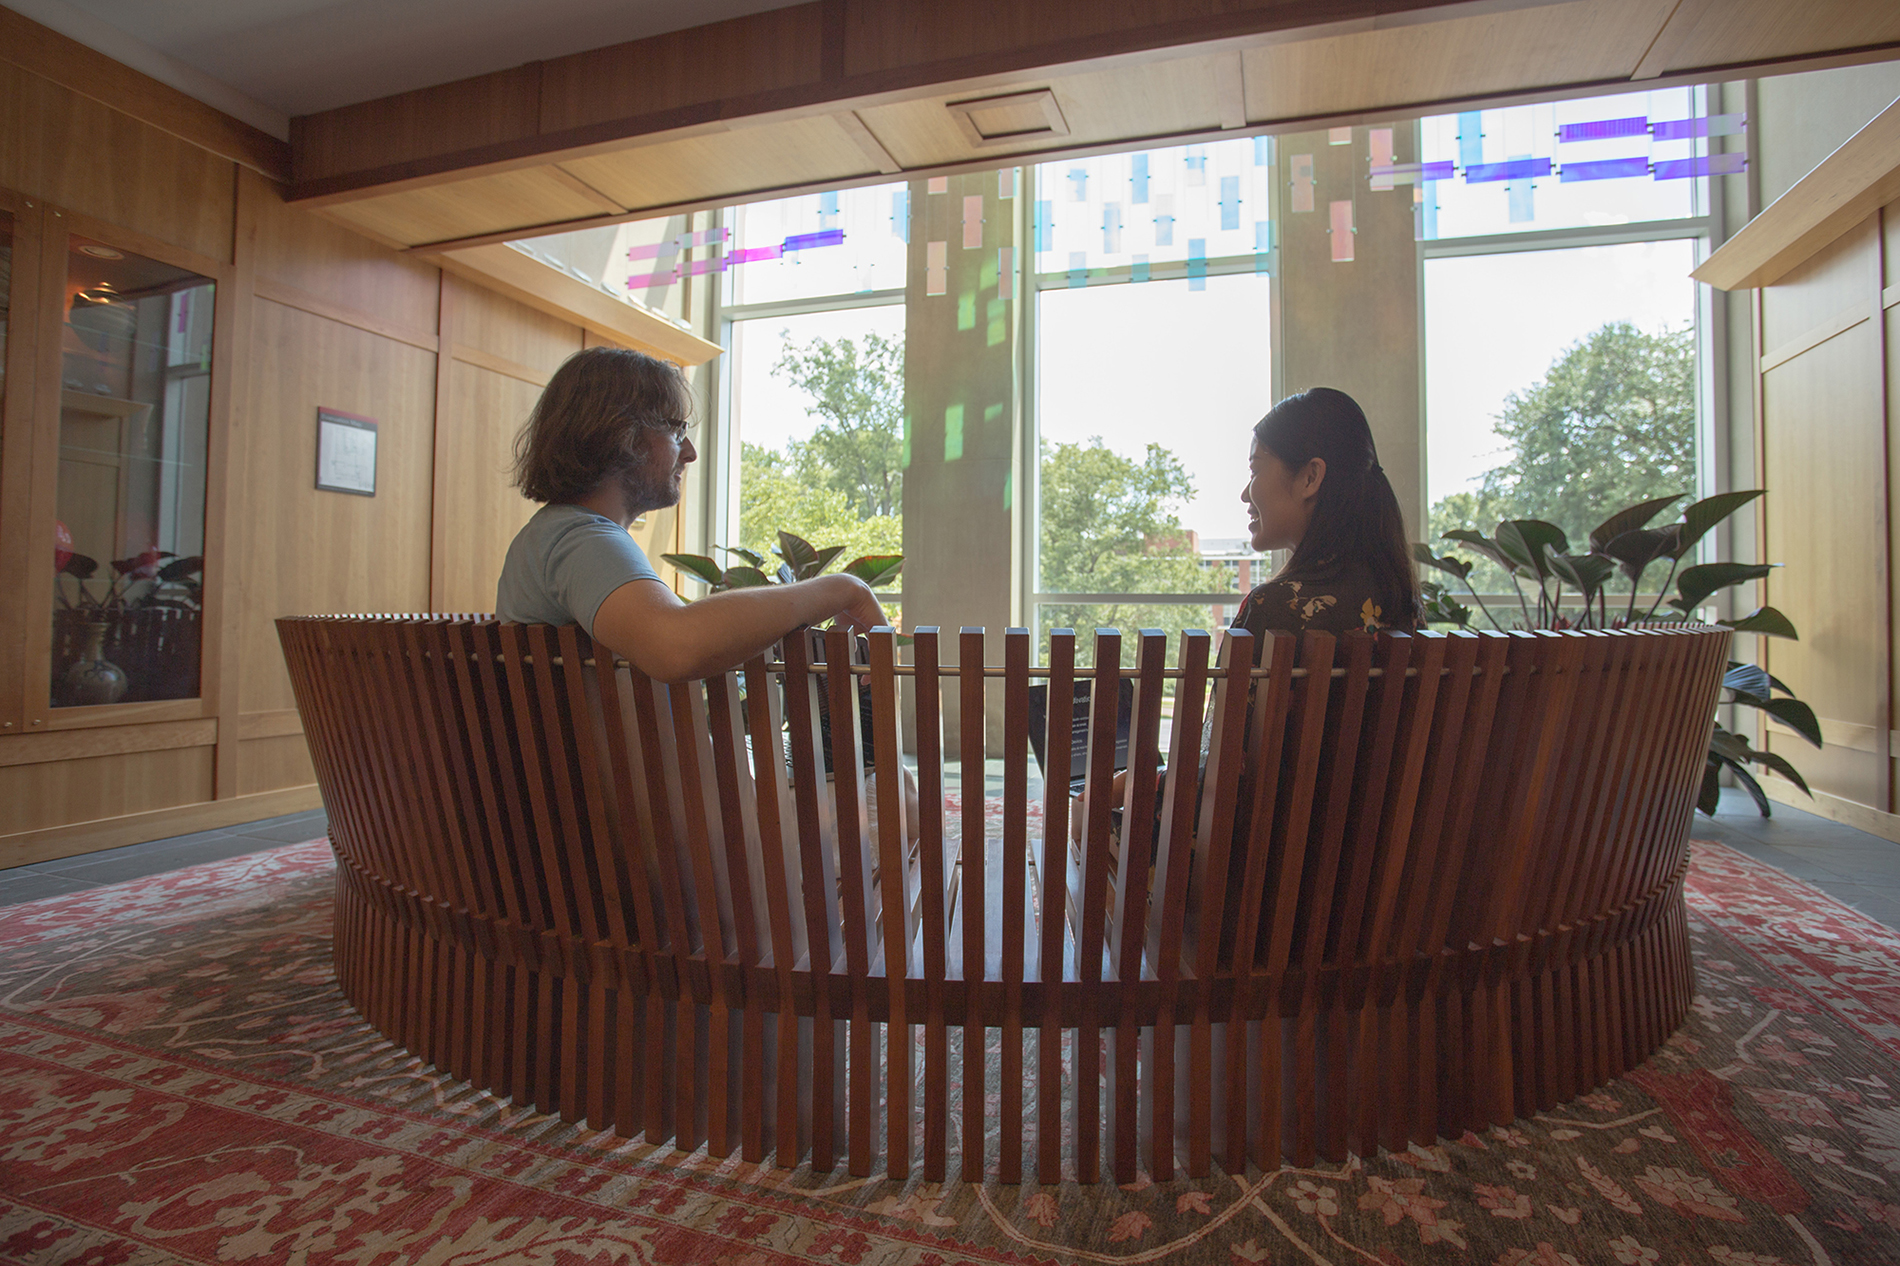 Students sit on a semicircular wooden bench in the conservatory at DH Hill Library